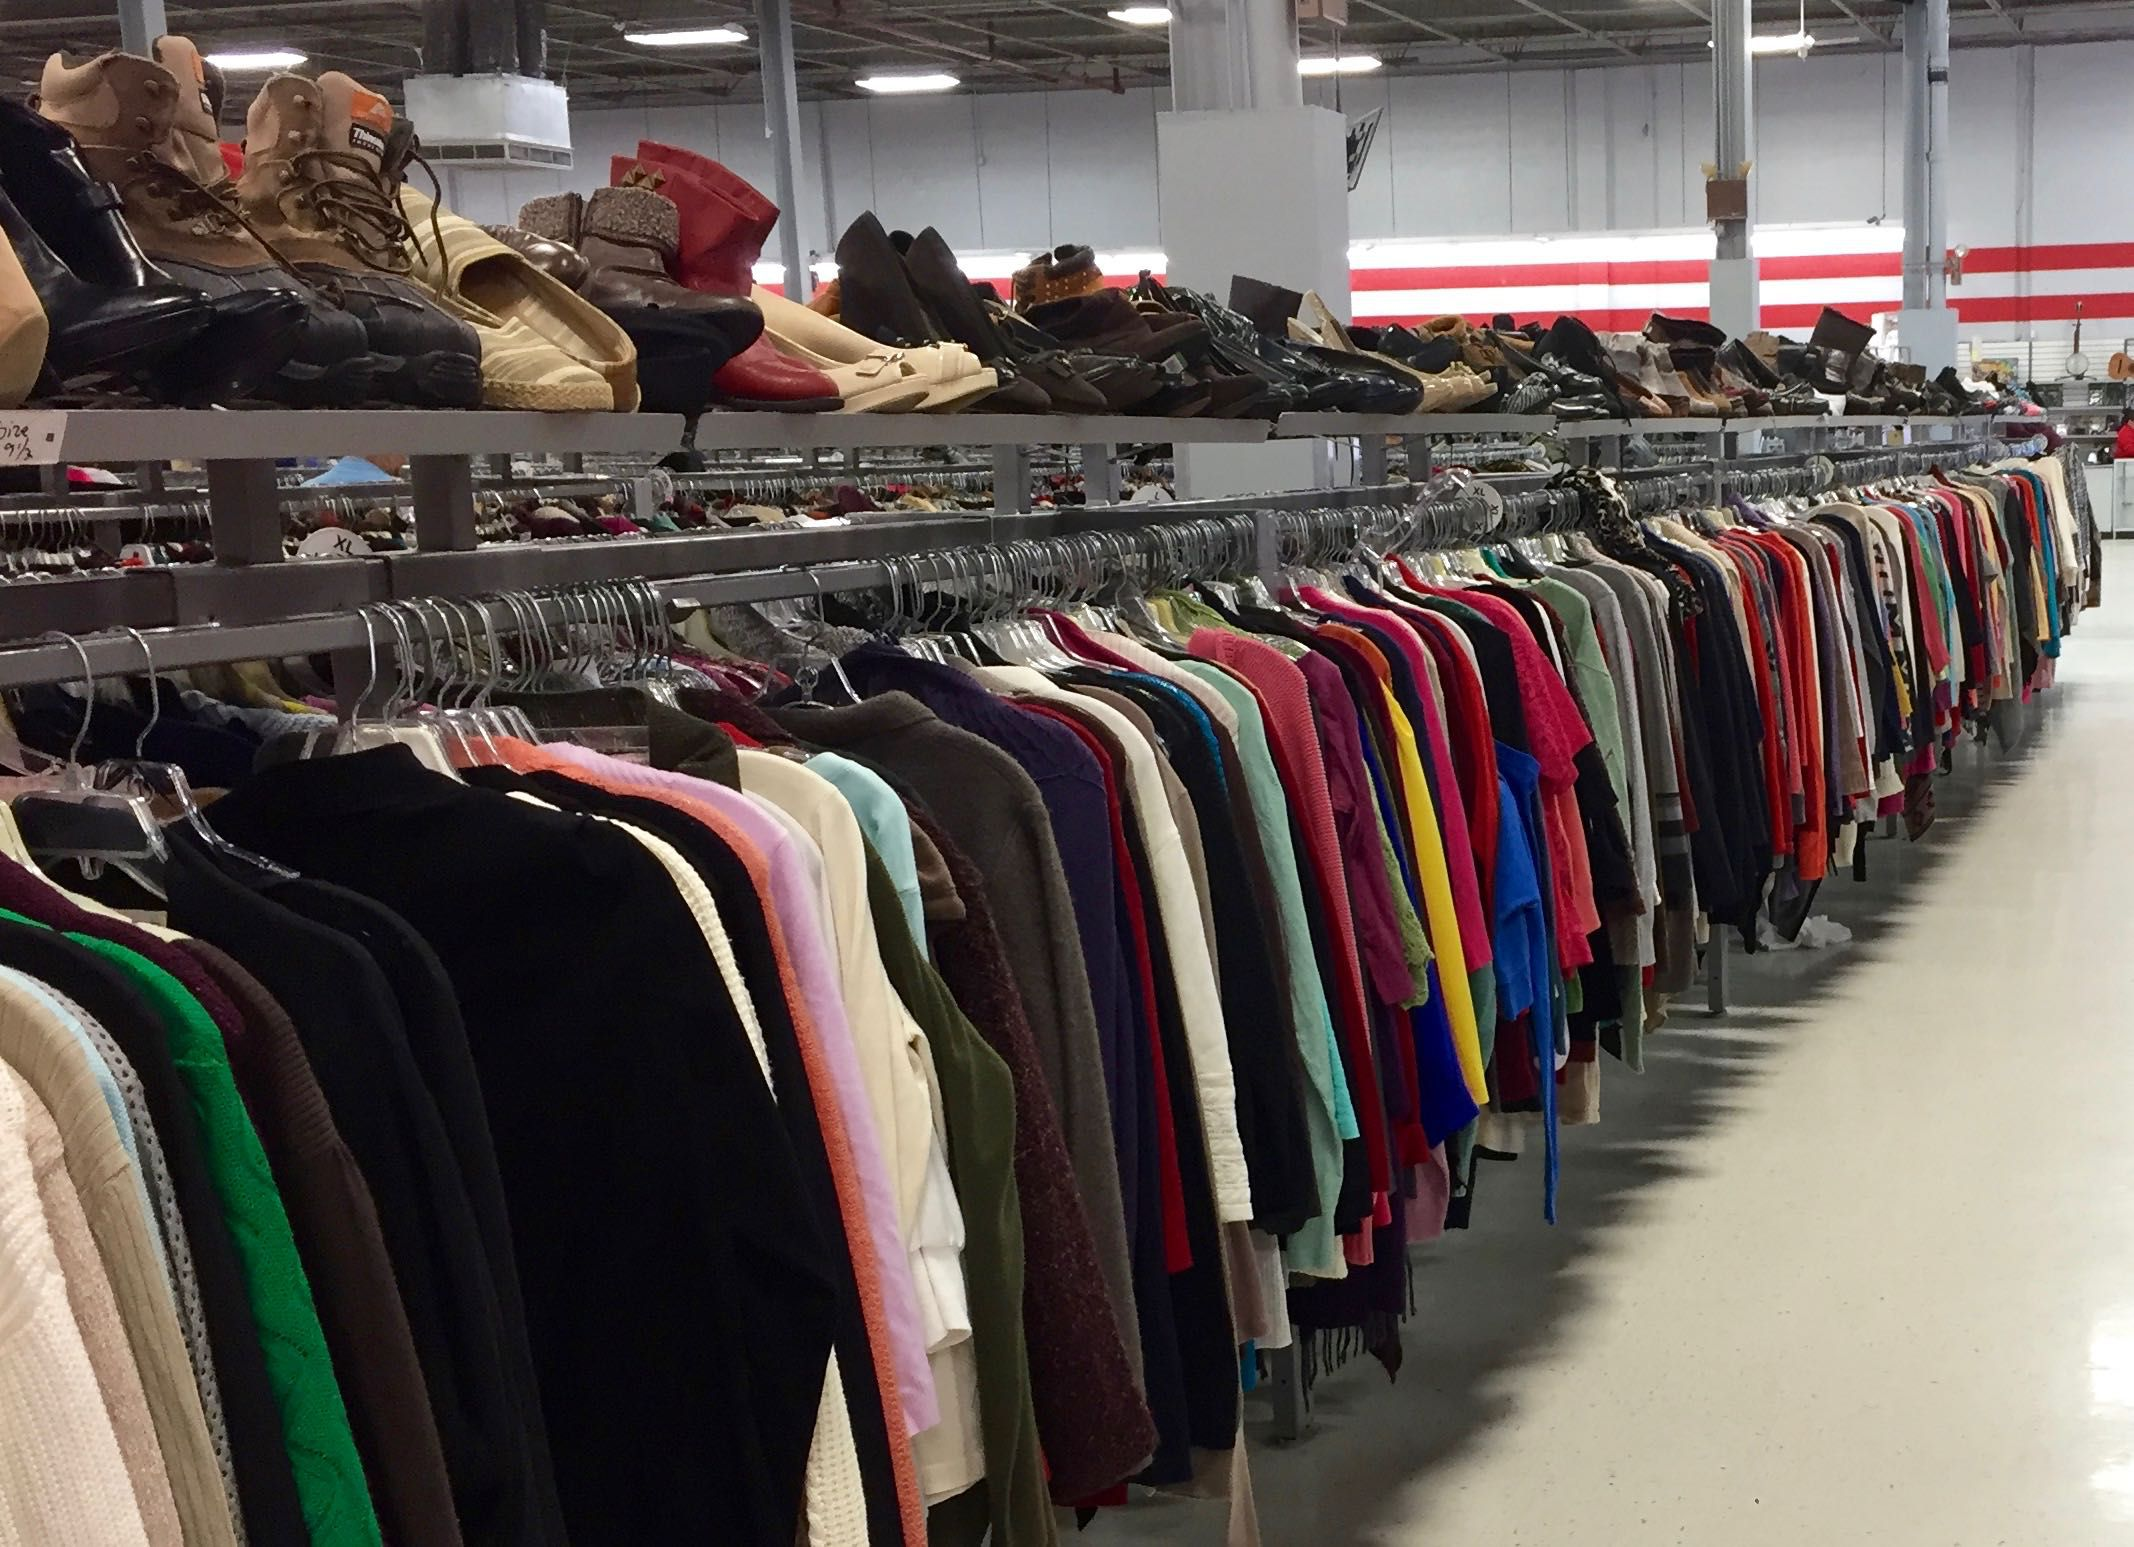 Everyone is 'tidying up.' Are thrift stores bursting at the seams?